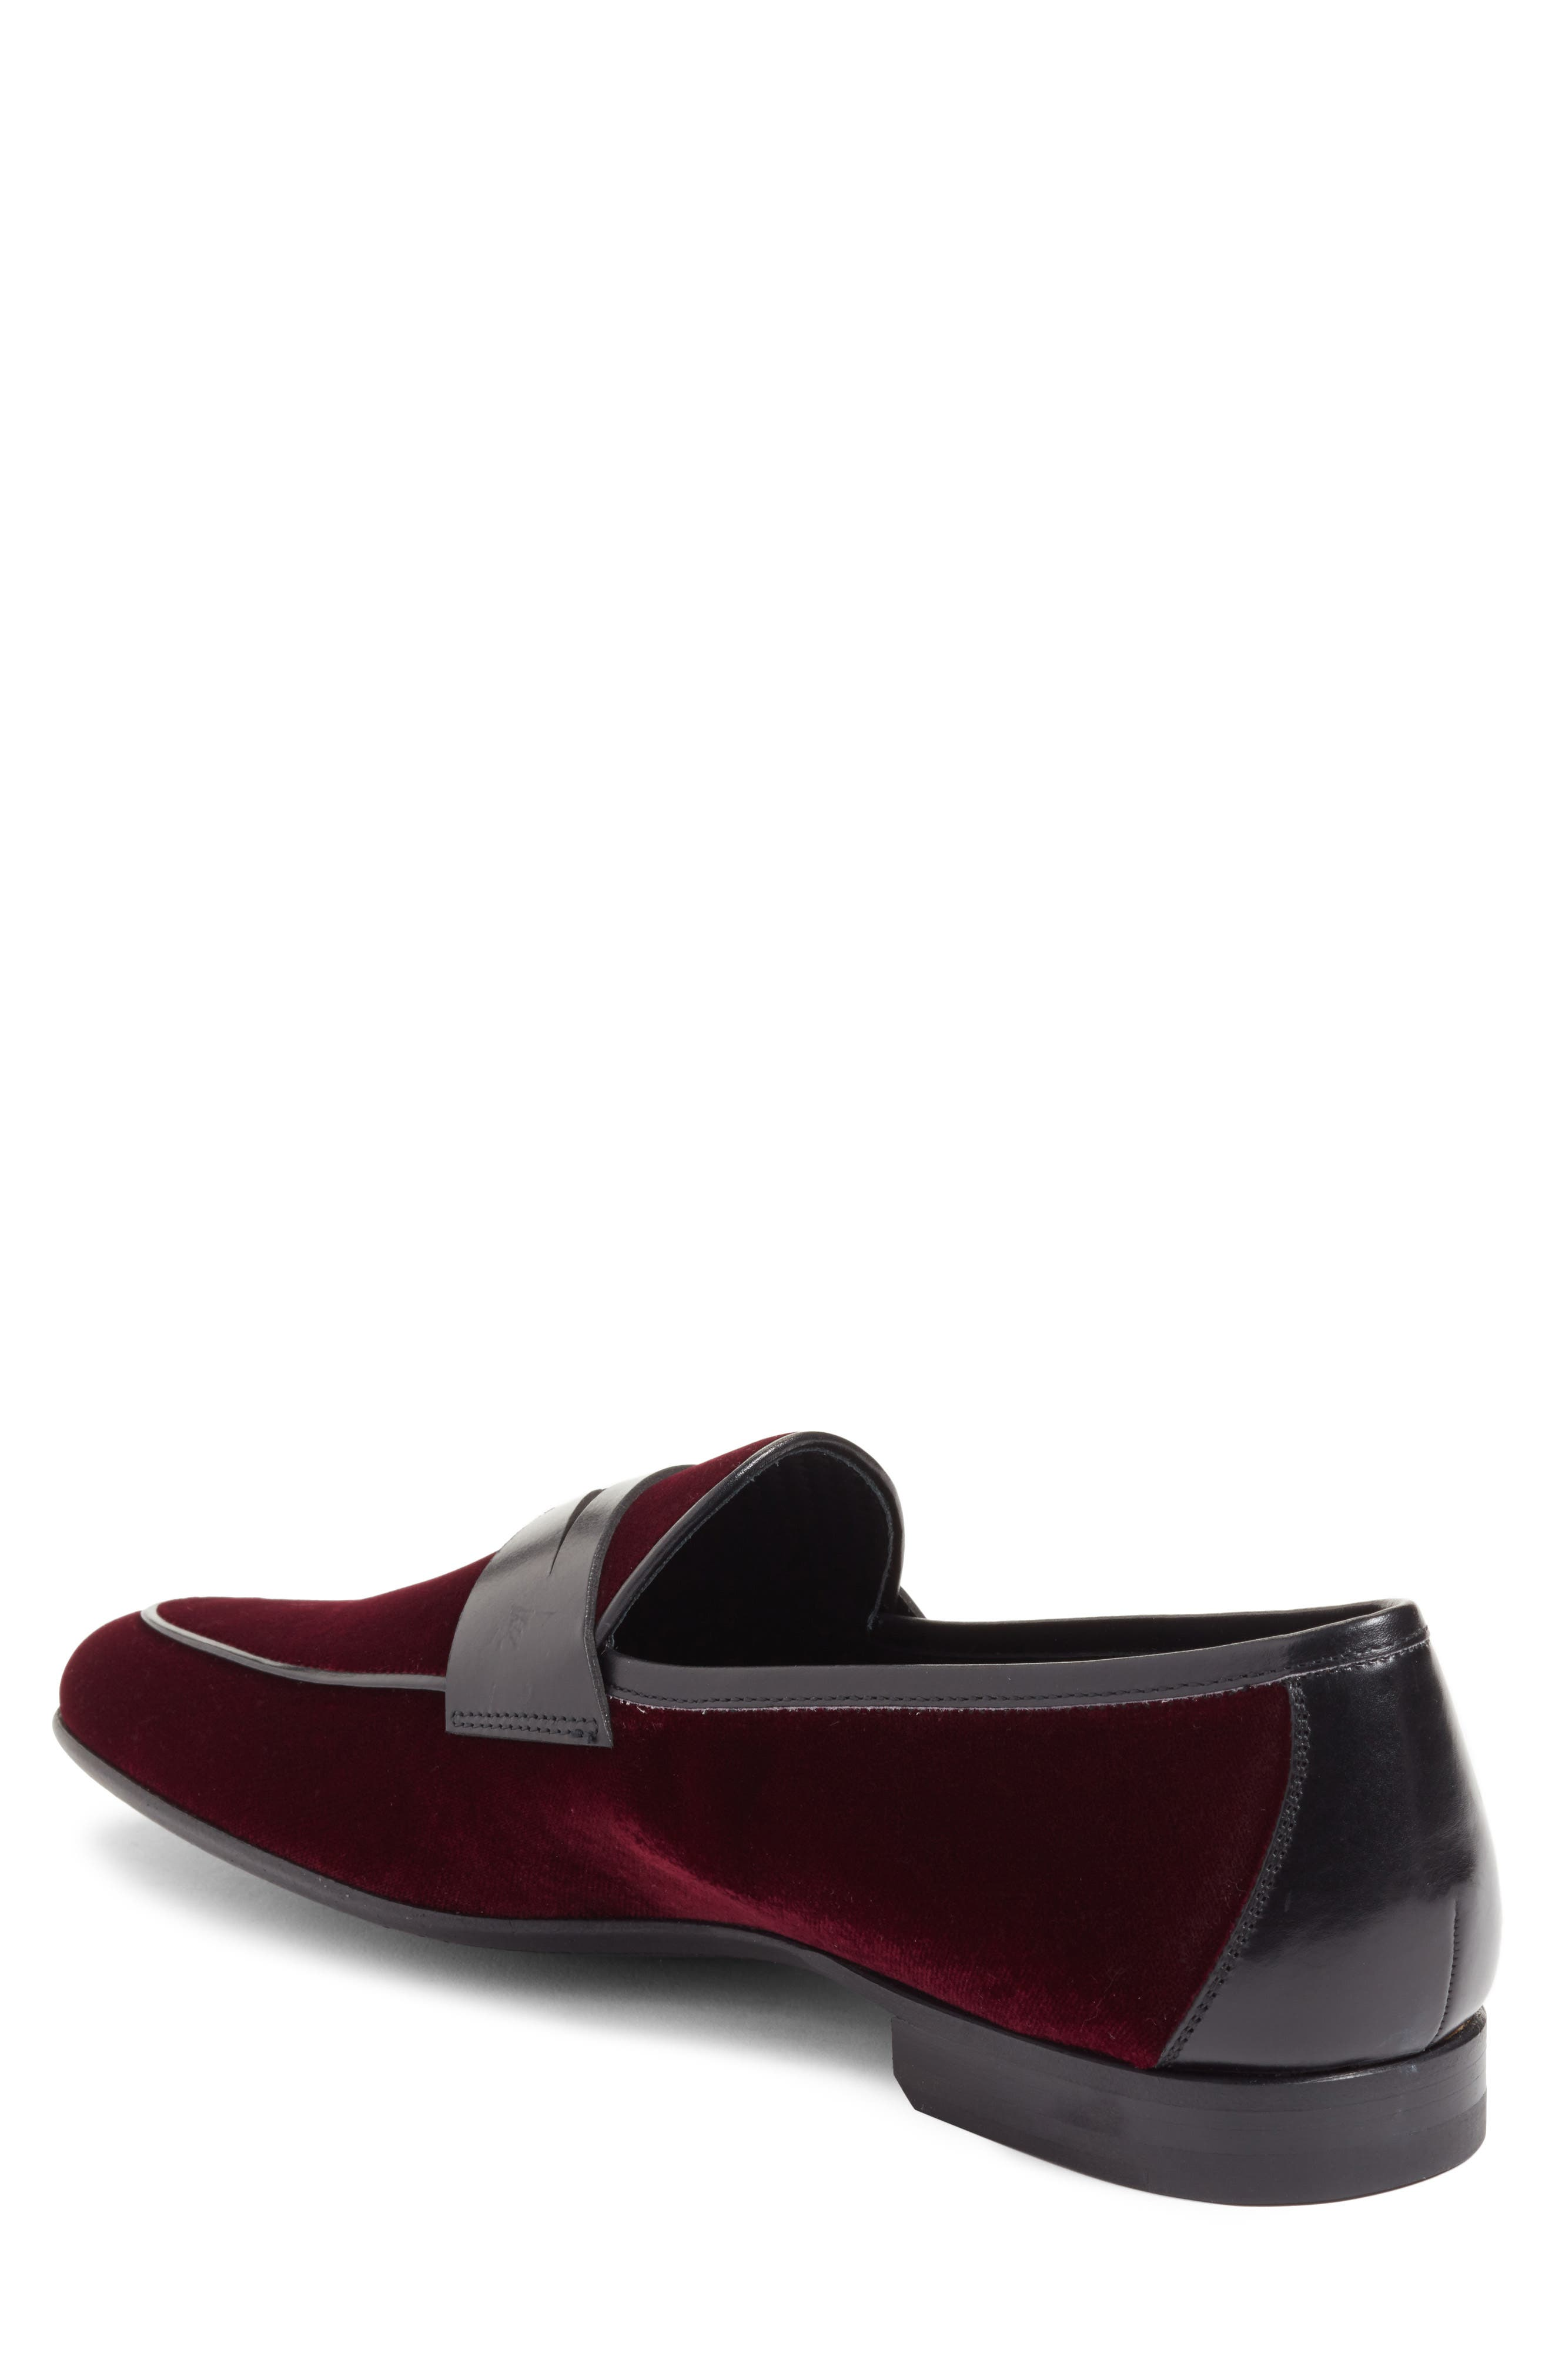 Dorado Penny Loafer,                             Alternate thumbnail 2, color,                             BURGUNDY